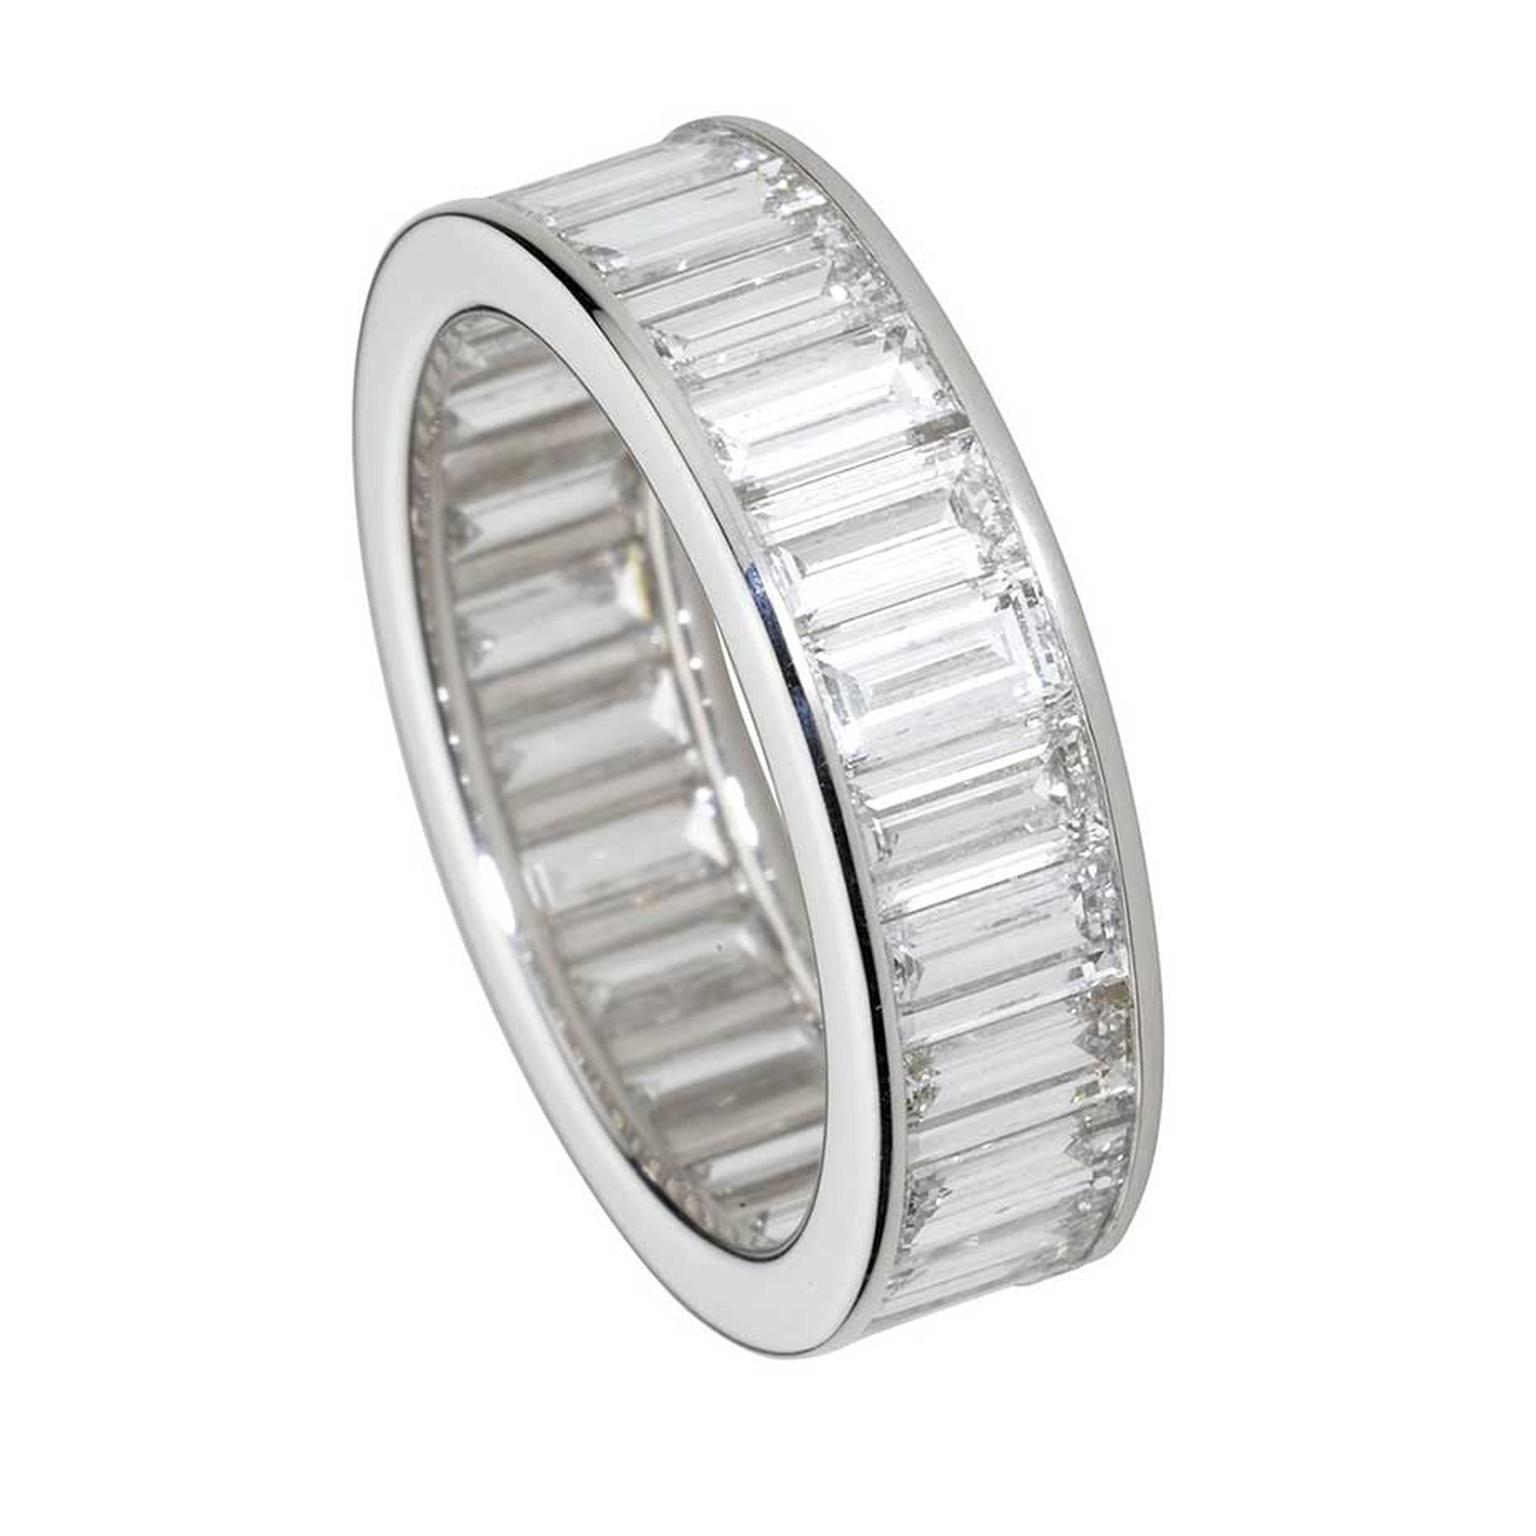 Cartier eternity ring in platinum, set with baguette-cut diamonds.